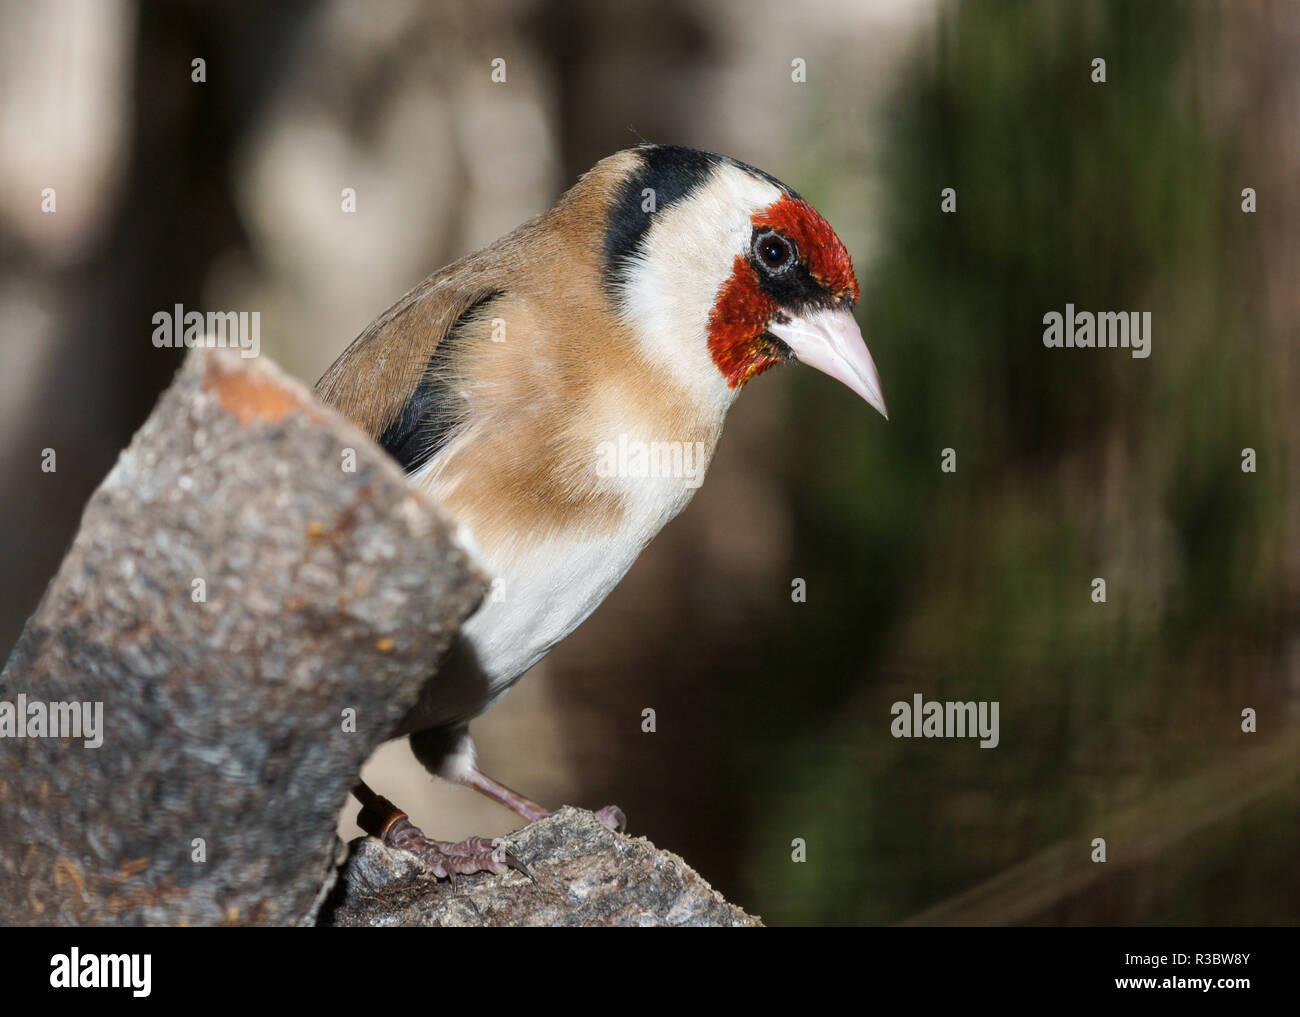 The Goldfinch (Carduelis carduelis) is one of the most attractive of all the resident birds of Britain. - Stock Image